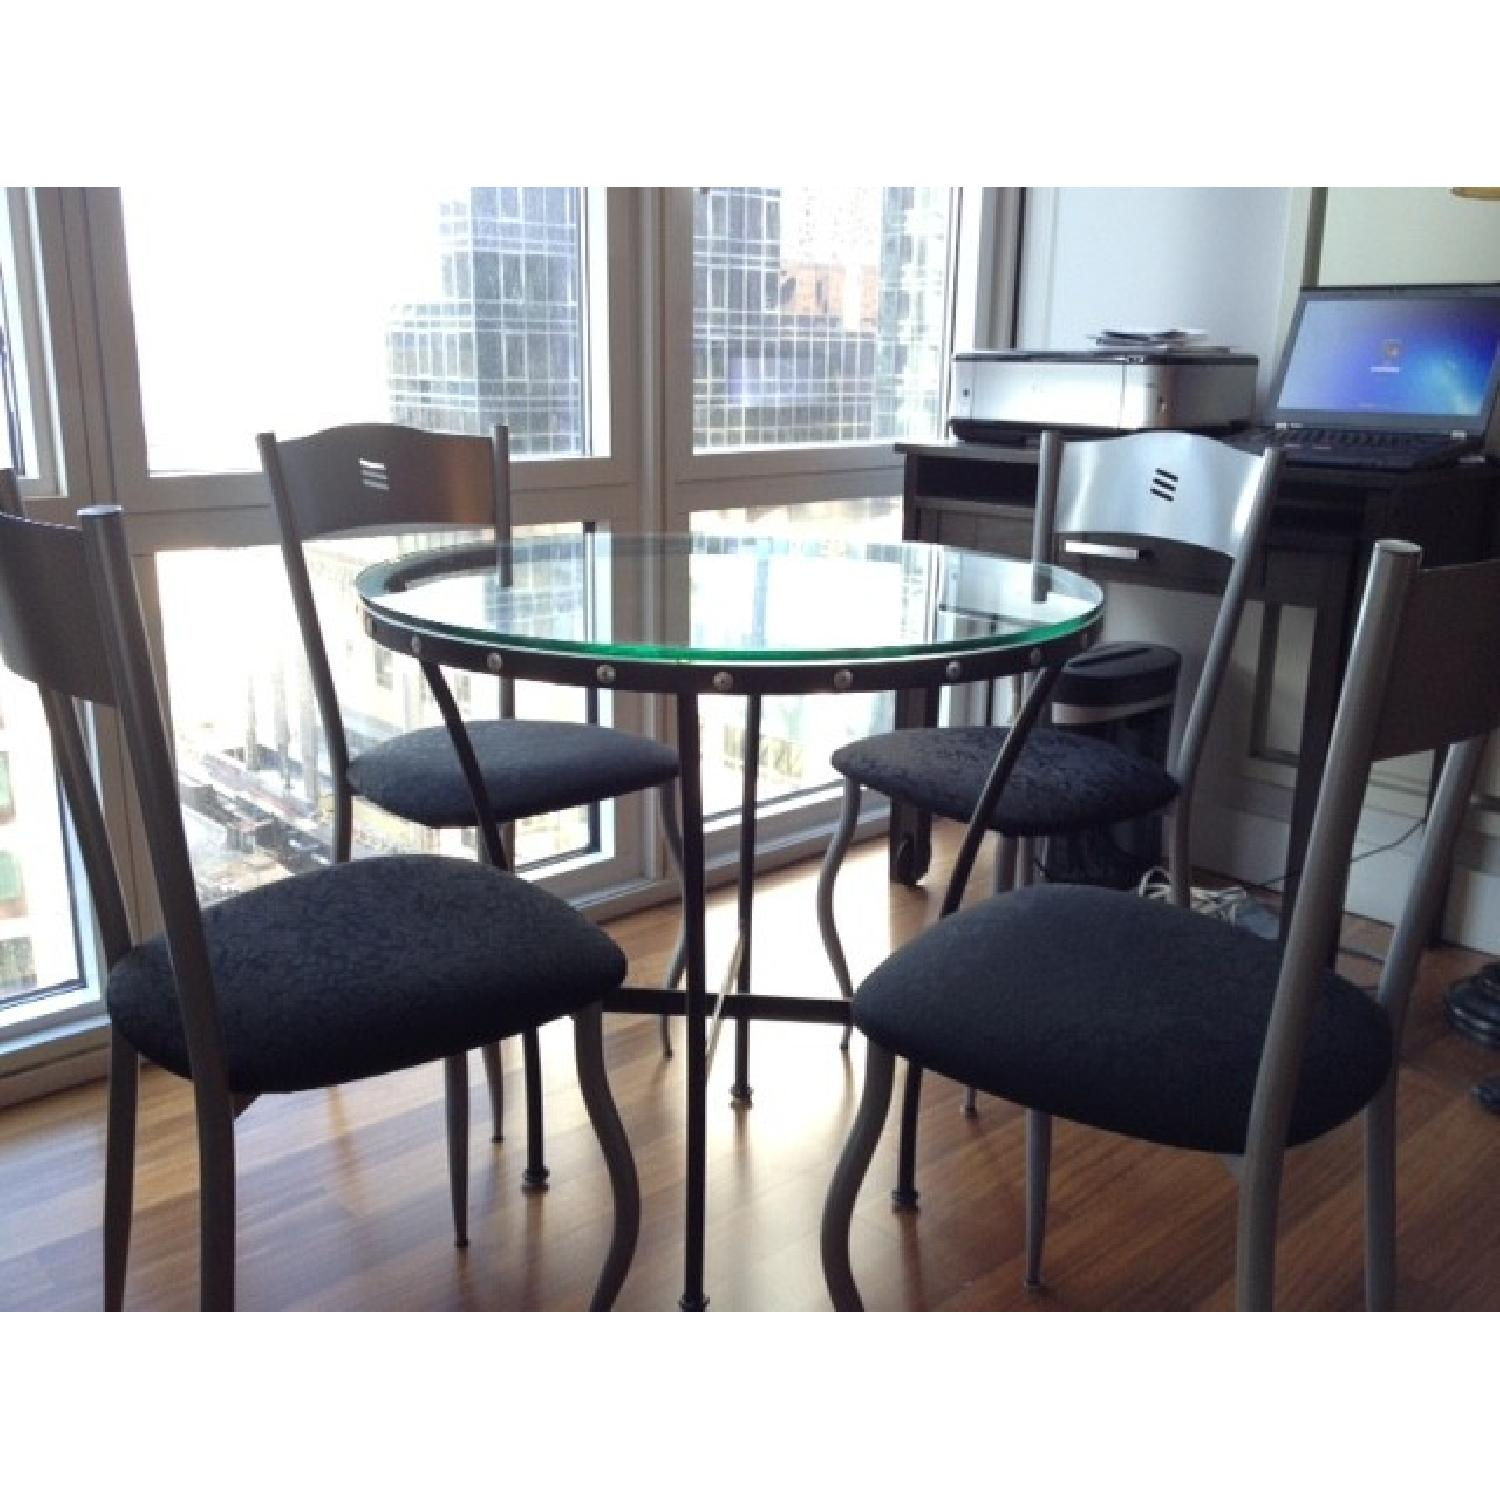 Glass Table w/ 4 Chairs - image-4